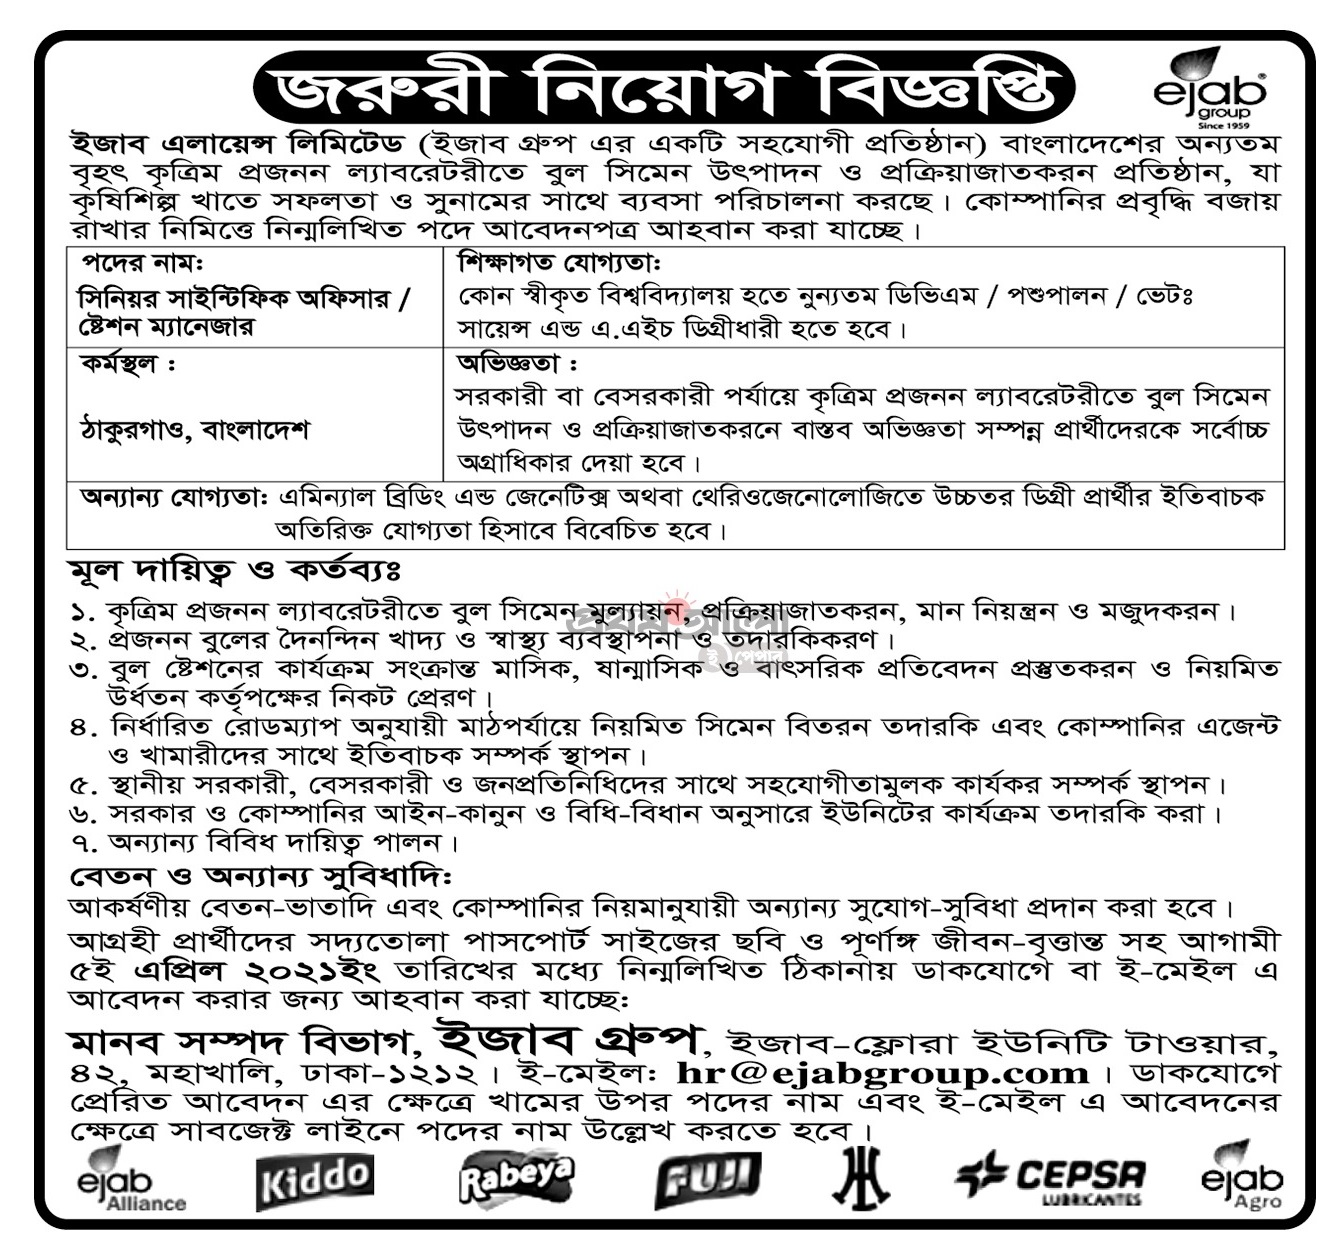 All private company Job Circular 2021 - besorkari chakrir khobor 2021 - বেসরকারি চাকরির খবর ২০২১